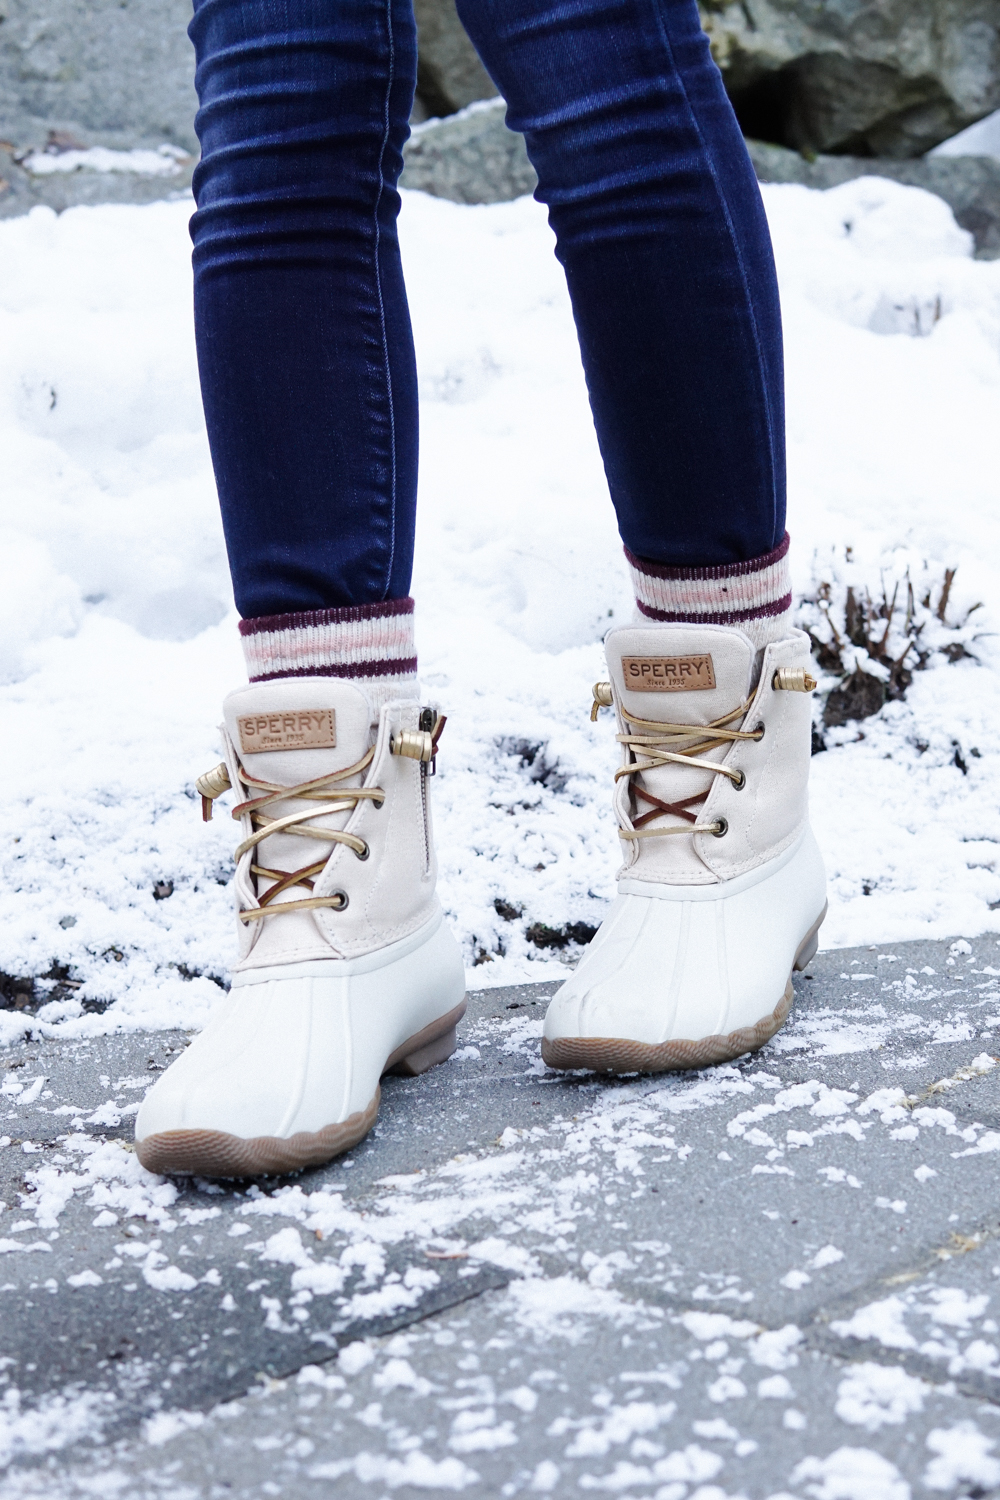 winter outfit inspiration, winter style, winter fashion, patagonia, sperry duck boots, sperry, gucci disco crossbody, whister, canada, travel style, ski town, what to wear in canada in the winter